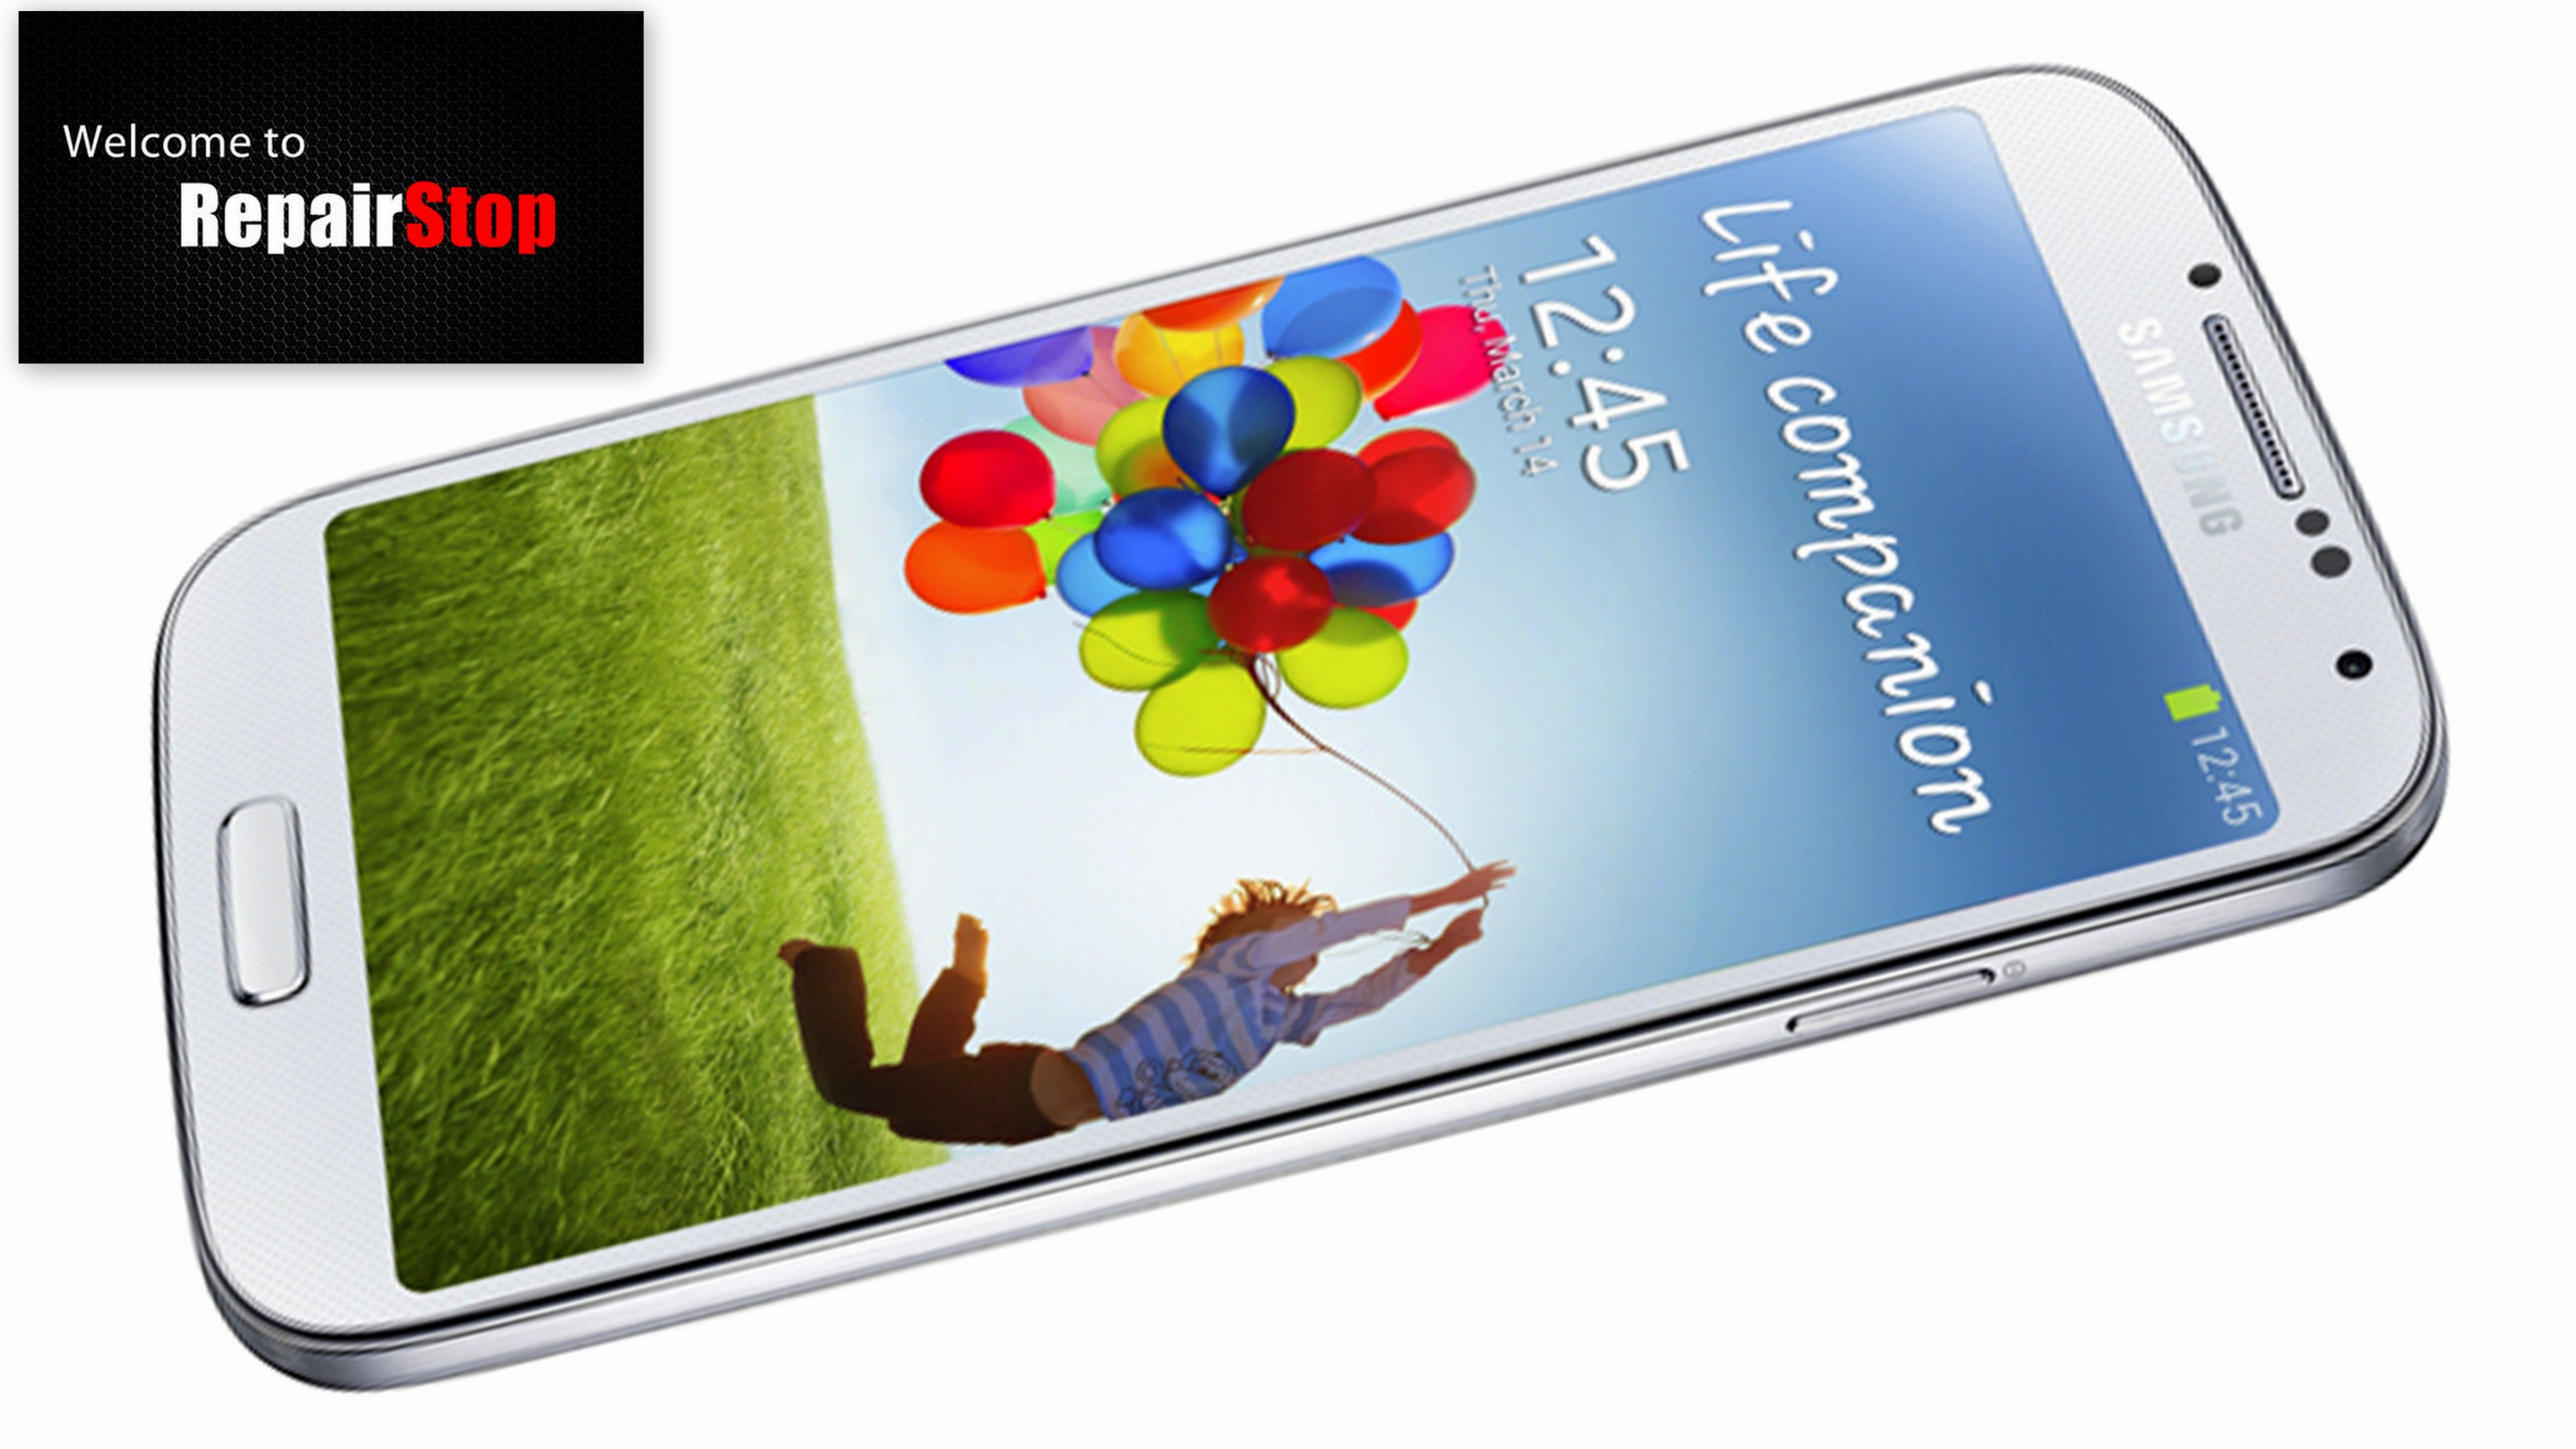 Samsung Repair Services We offer professional repair services for Samsung Smartphones Fast service and low prices backed by unbeatable customer service